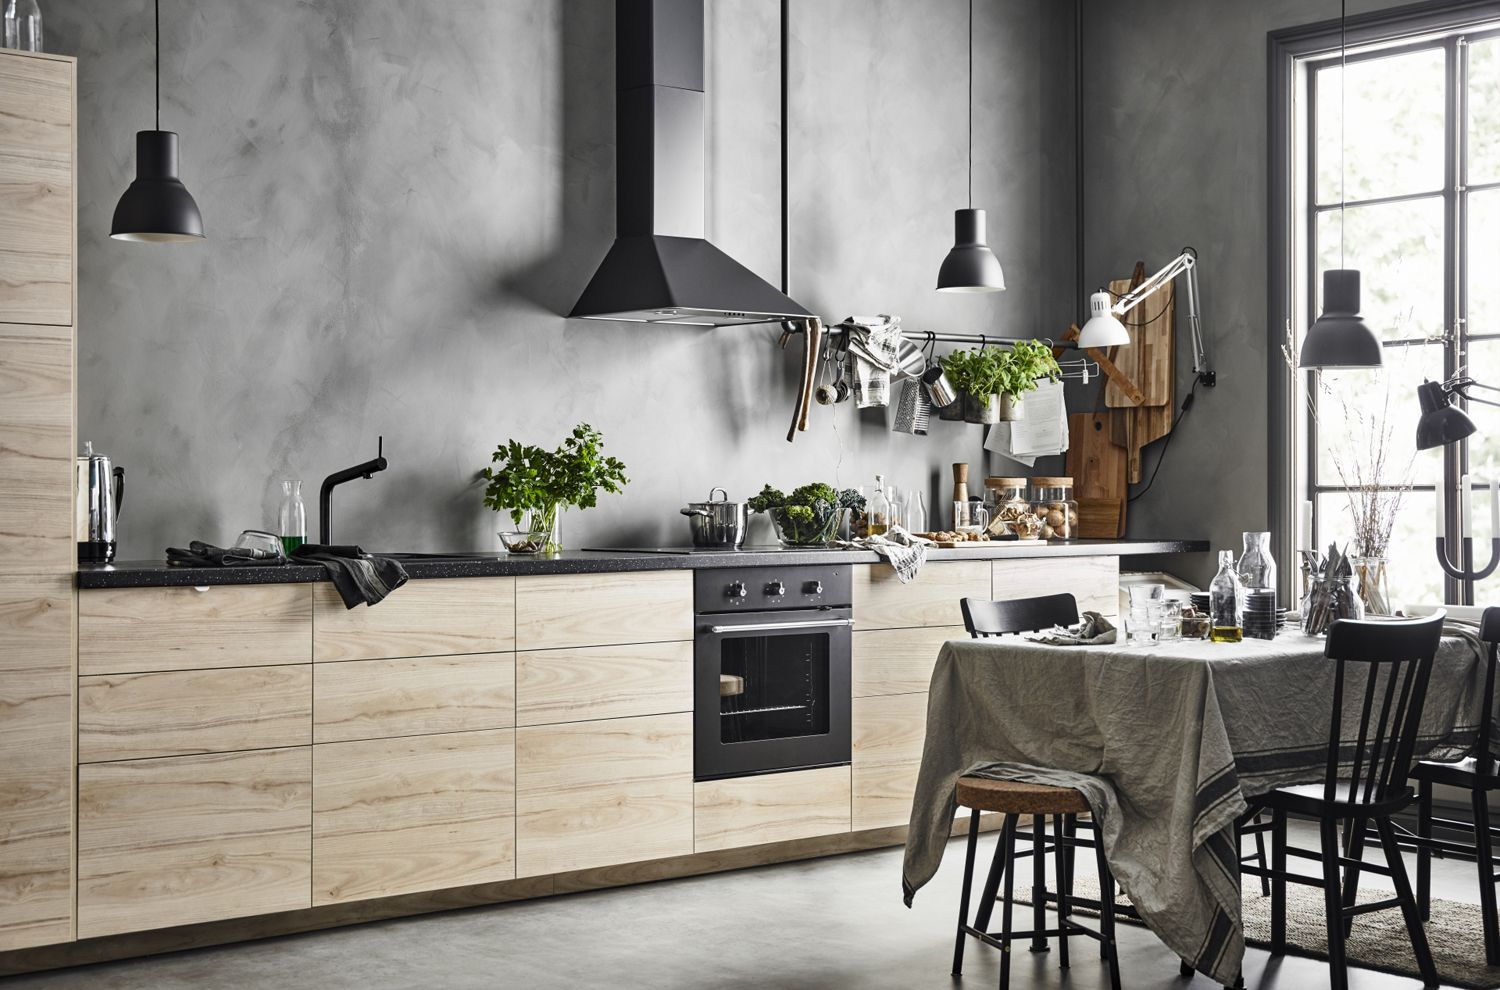 Ikea: free style - Living Corriere | Cucina, Kitchen design and Kitchens